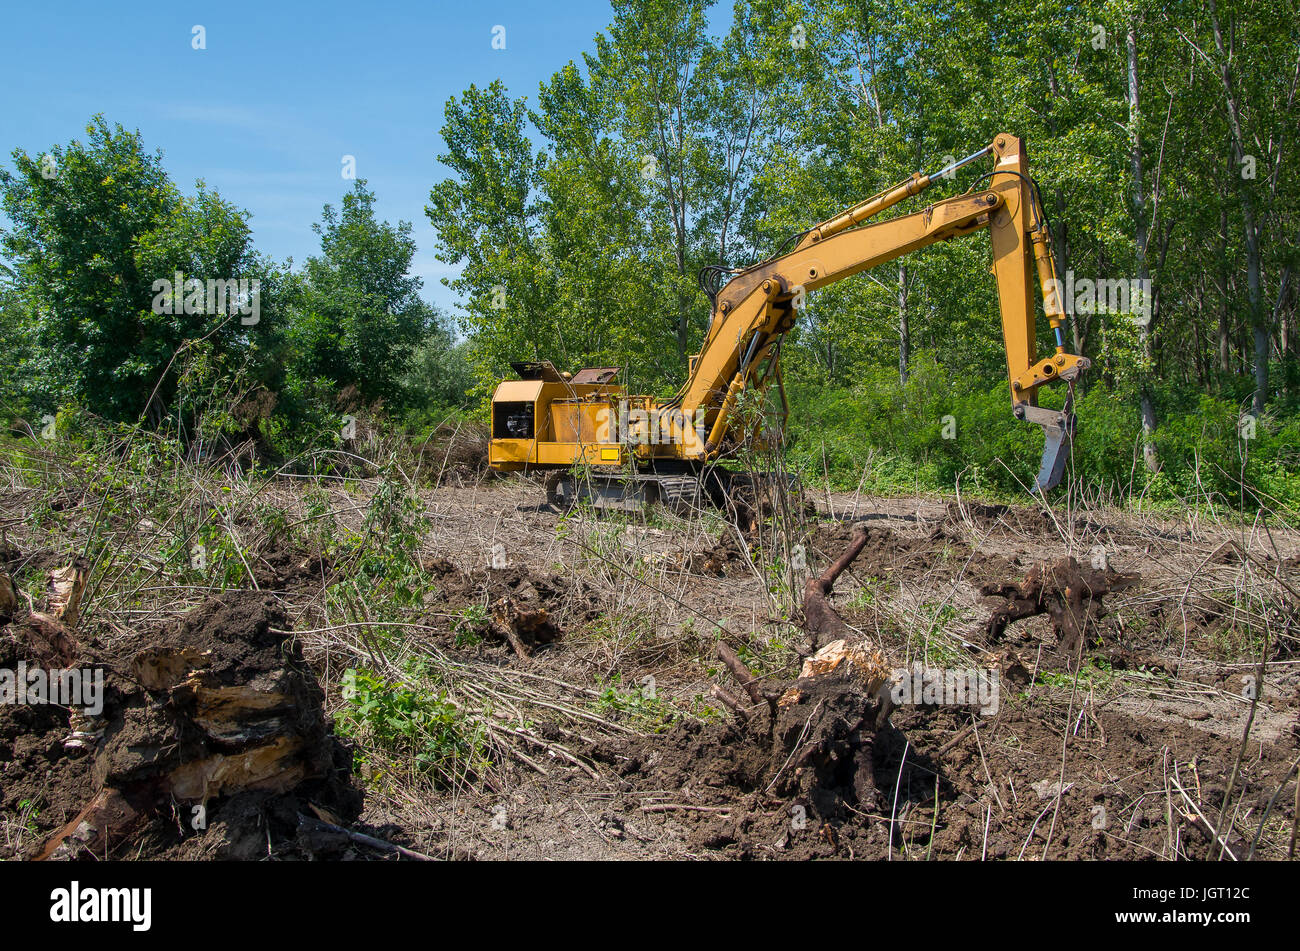 Deforestation of forest. Excavator used for digging logs and roots - Stock Image